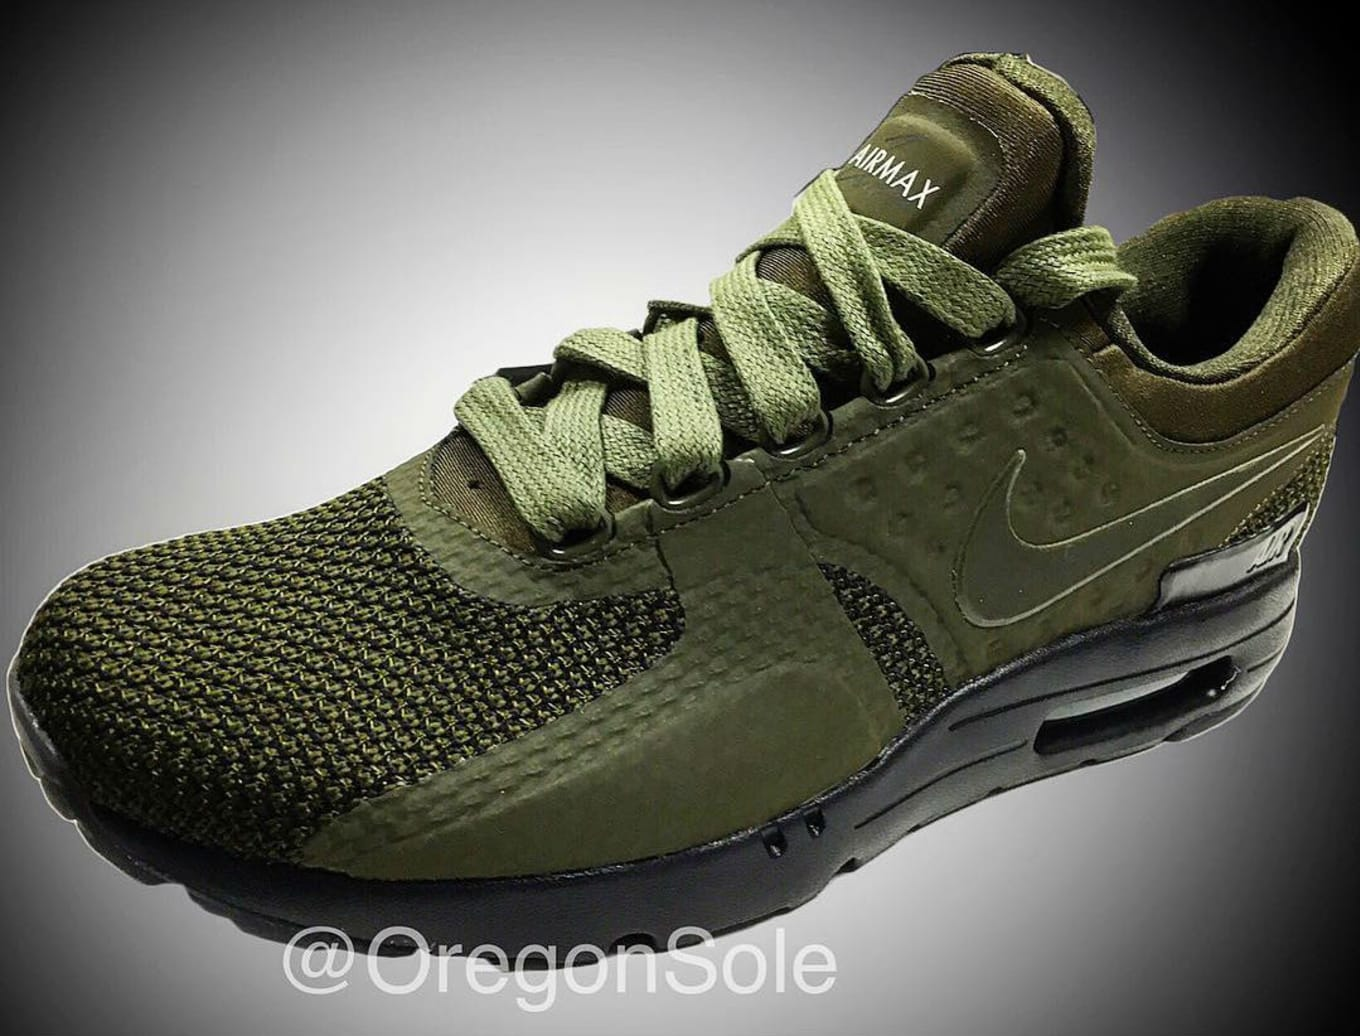 reputable site 8098a 95cca Nike Air Max Zero